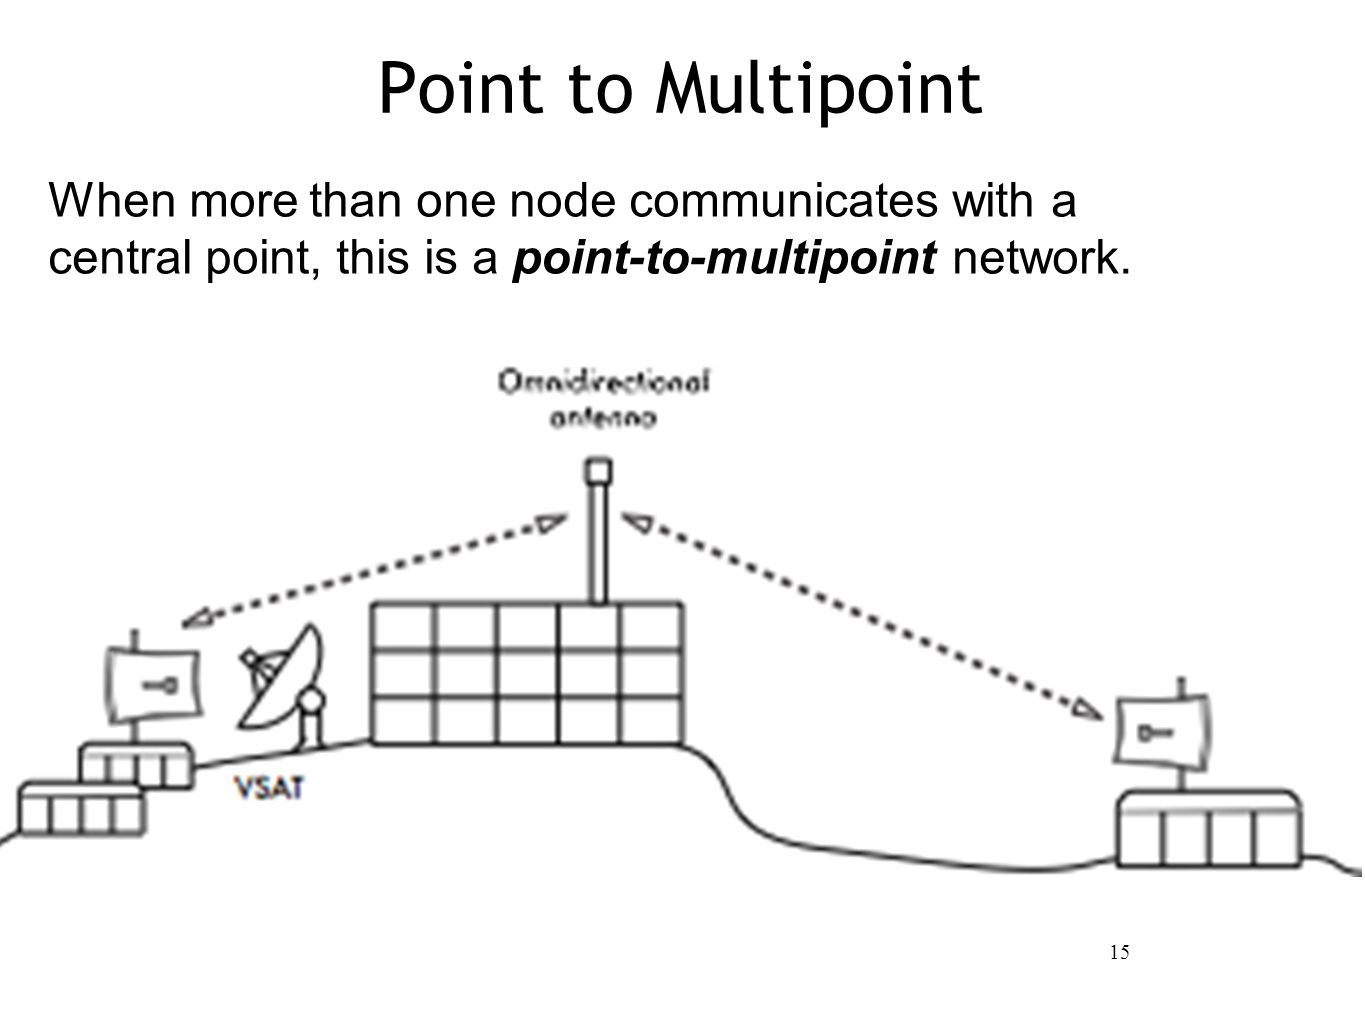 Introduction to wifi networking training materials for wireless 15 15 point to multipoint when more than one node communicates with a central point this is a point to multipoint network sciox Choice Image